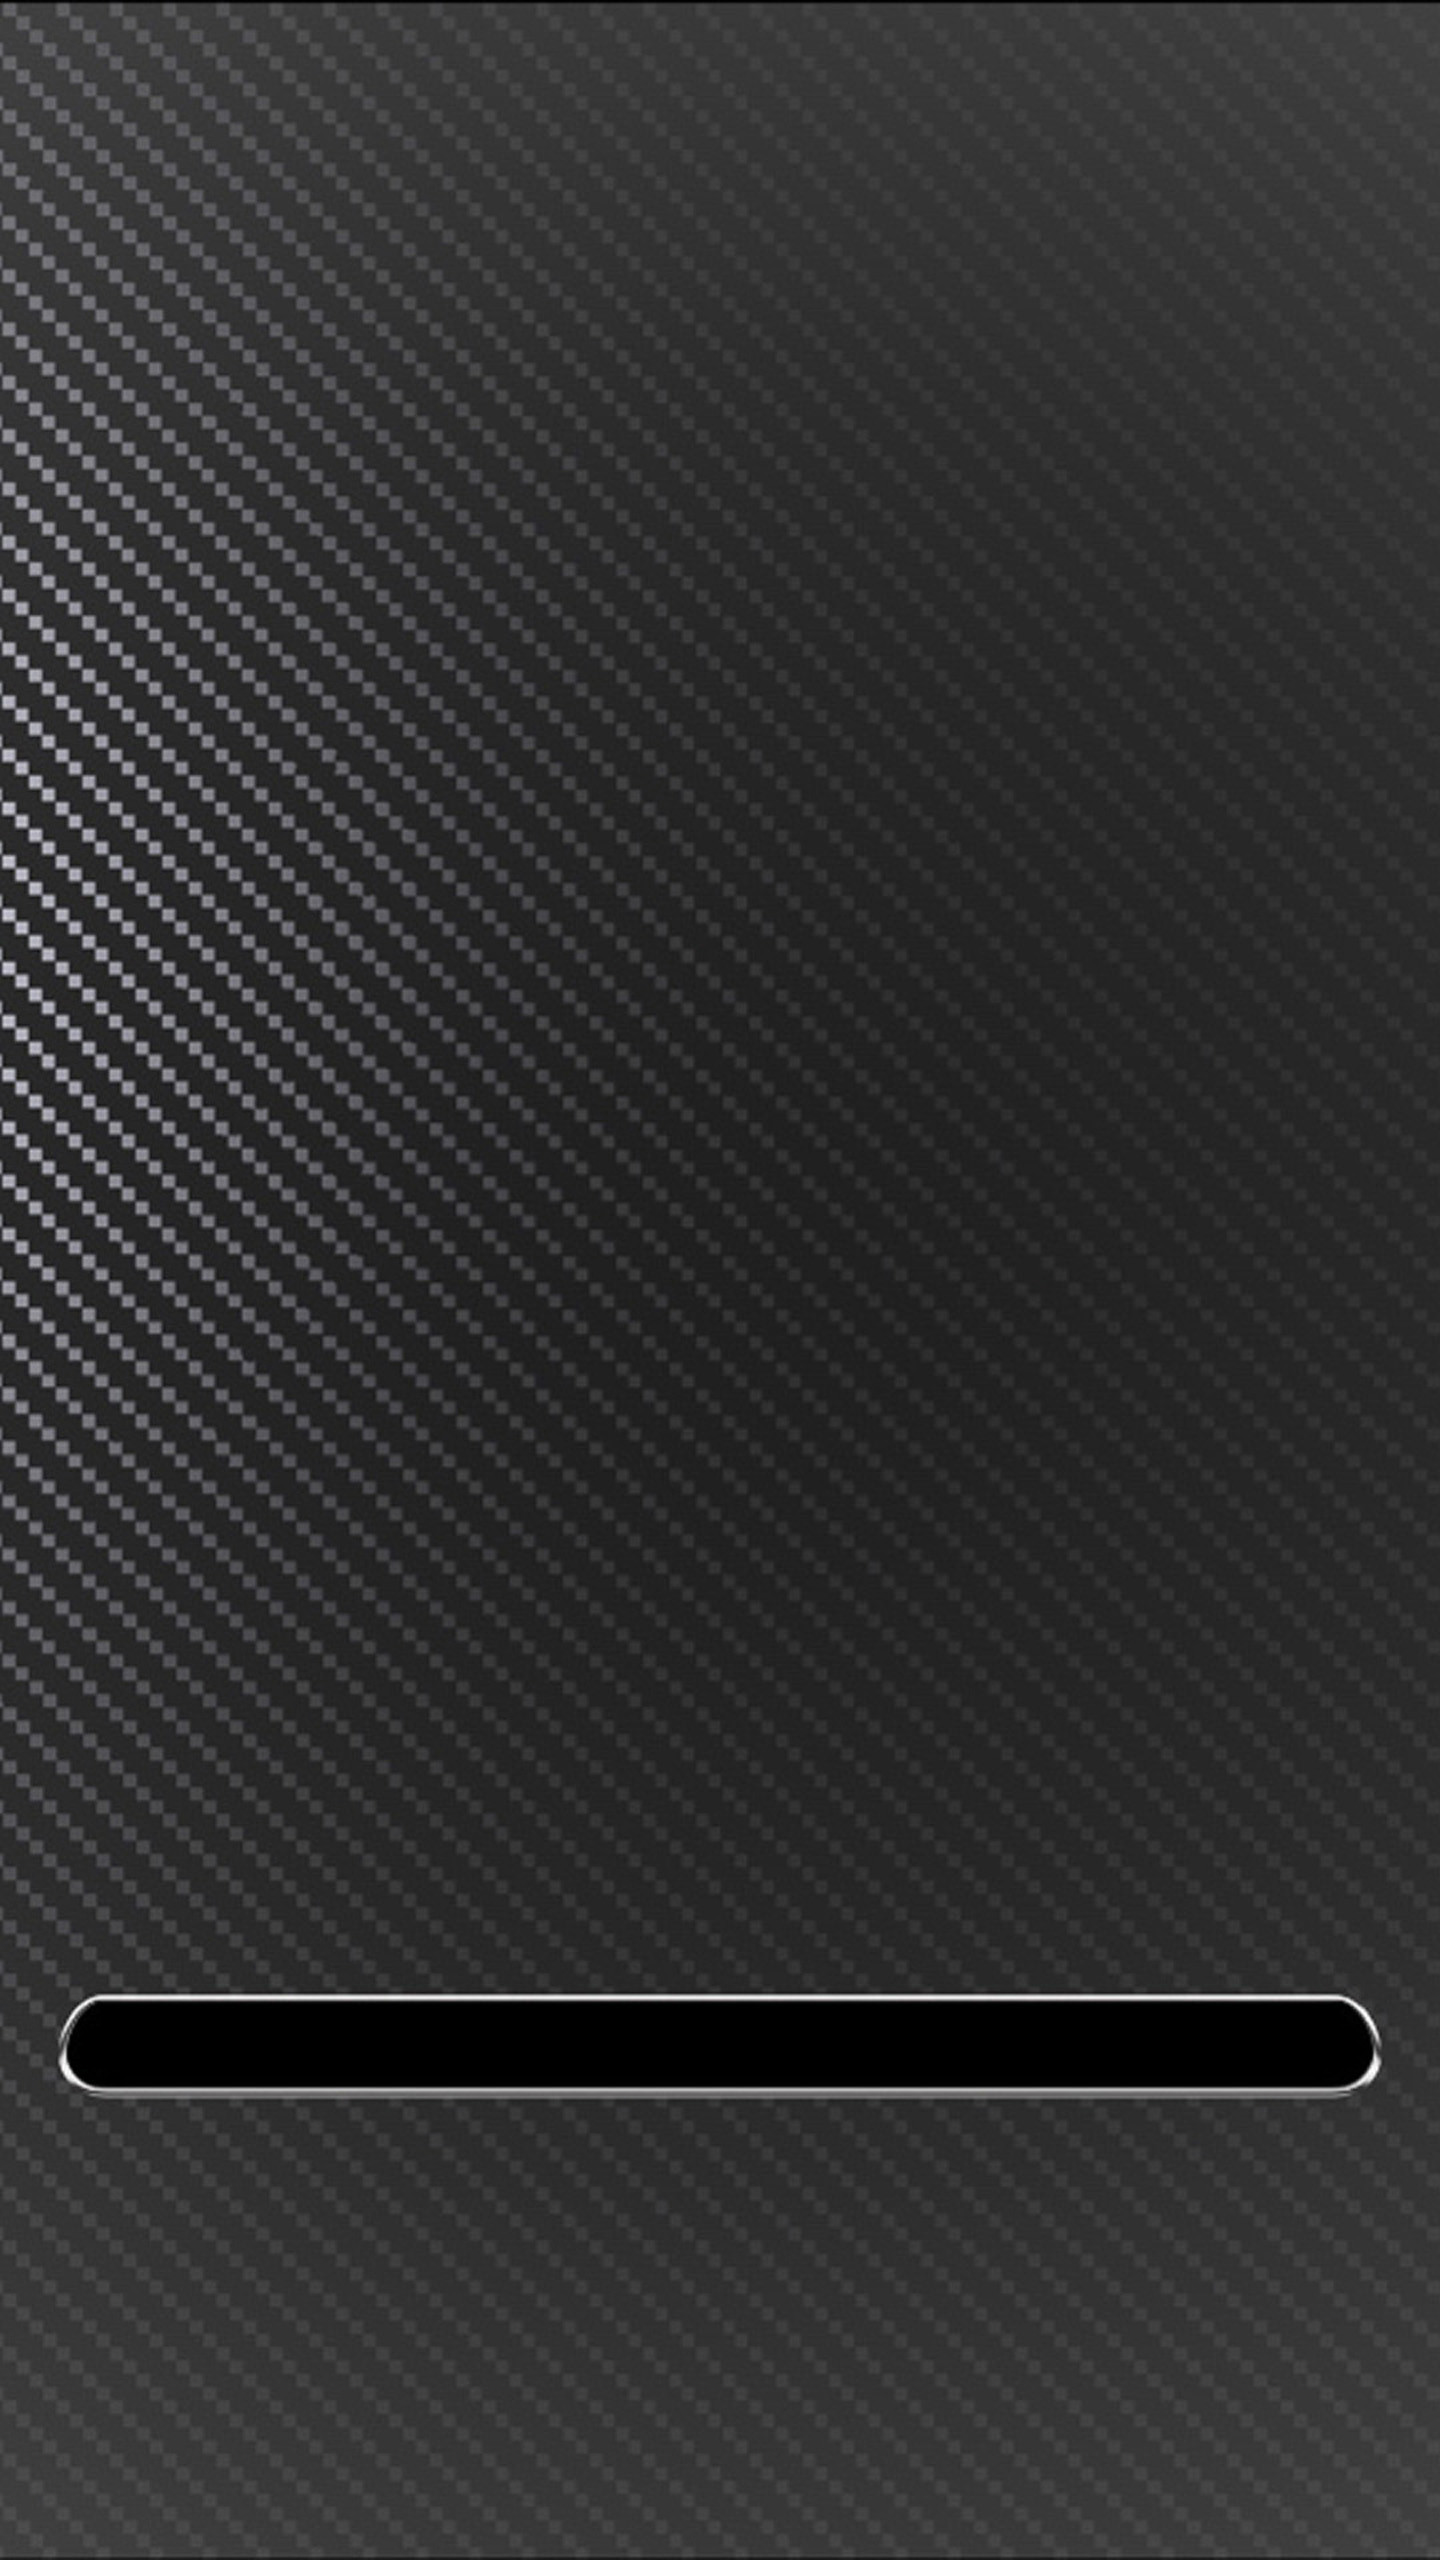 1440x2560 Carbon Fiber wallpapers for galaxy S6.jpg